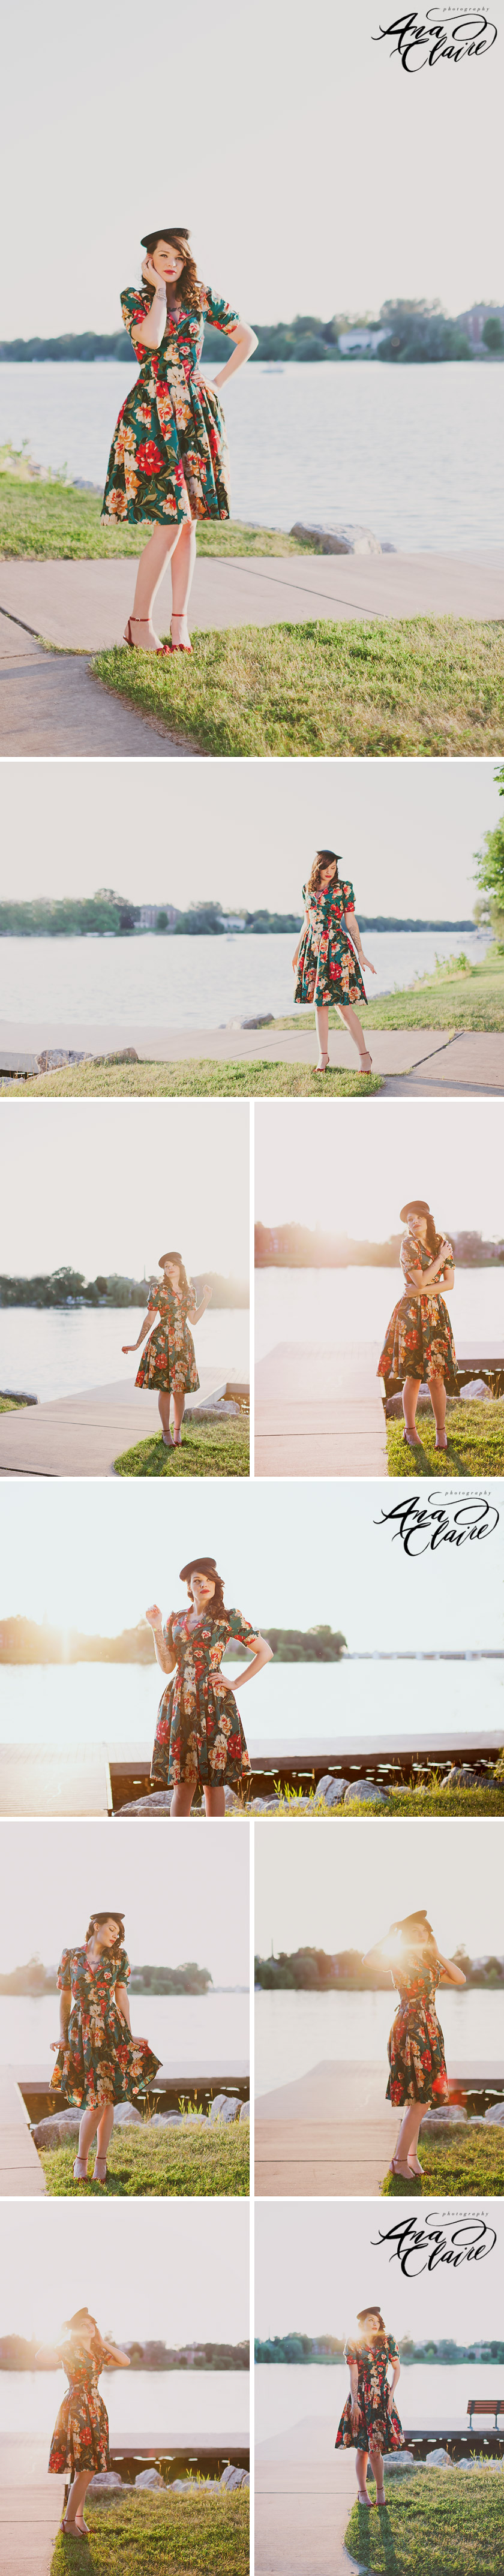 Styled-De-Pere-Shoot